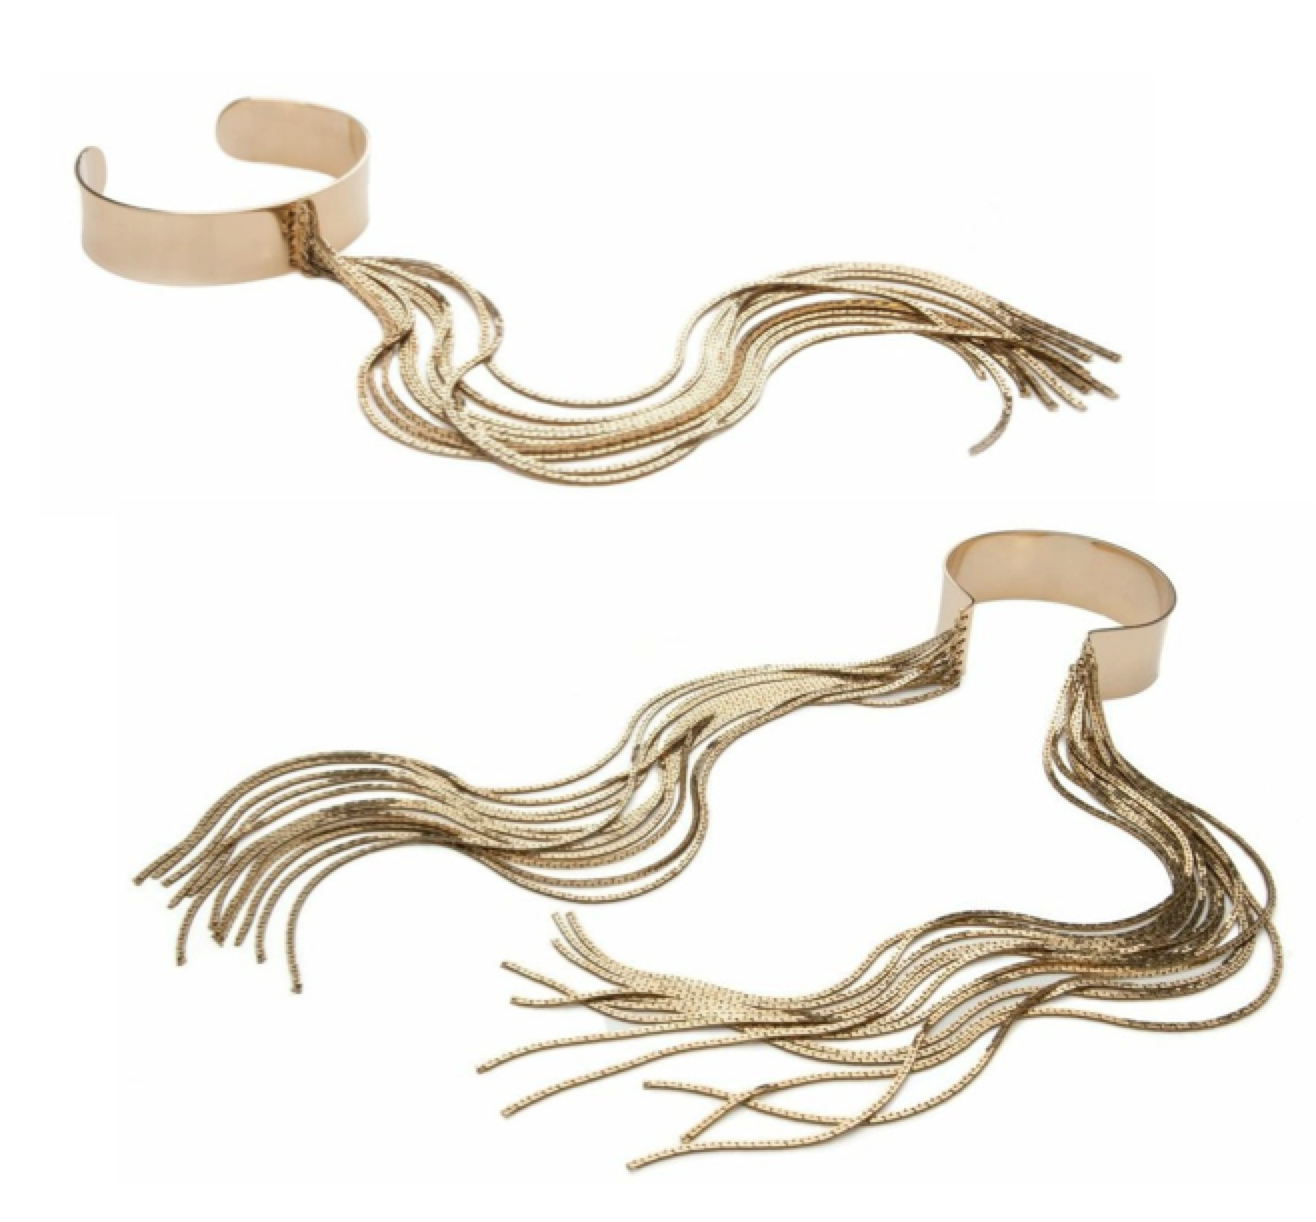 Monica Sordo Medusa Jewelry Gold bracelets